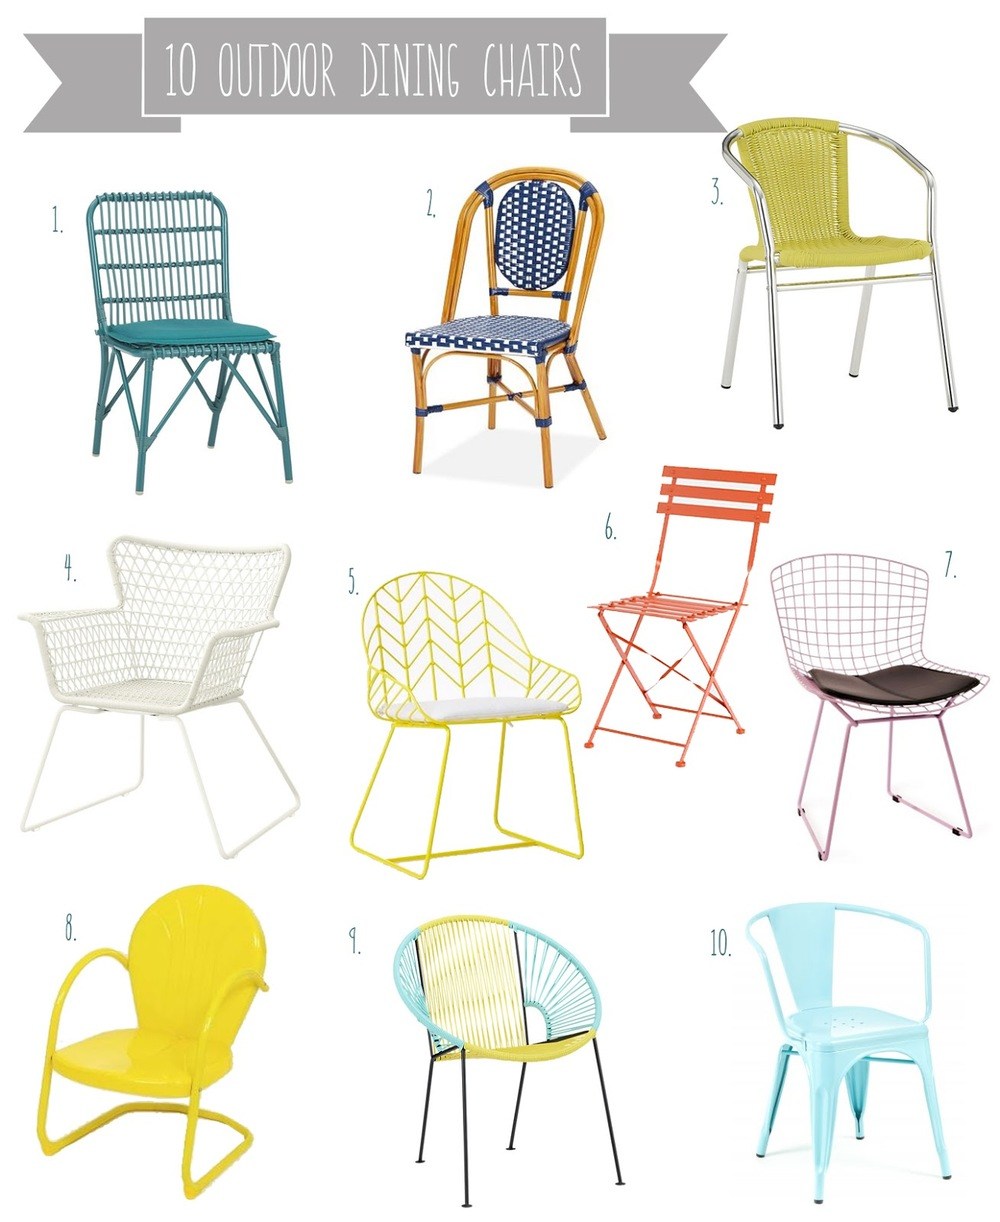 Metal outdoor dining furniture - Rex Chartreuse Dining Chair 70 4 Hogsten Dining Chair 80 5 Bend Dining Chair 249 6 Painted Metal Bistro Chair 98